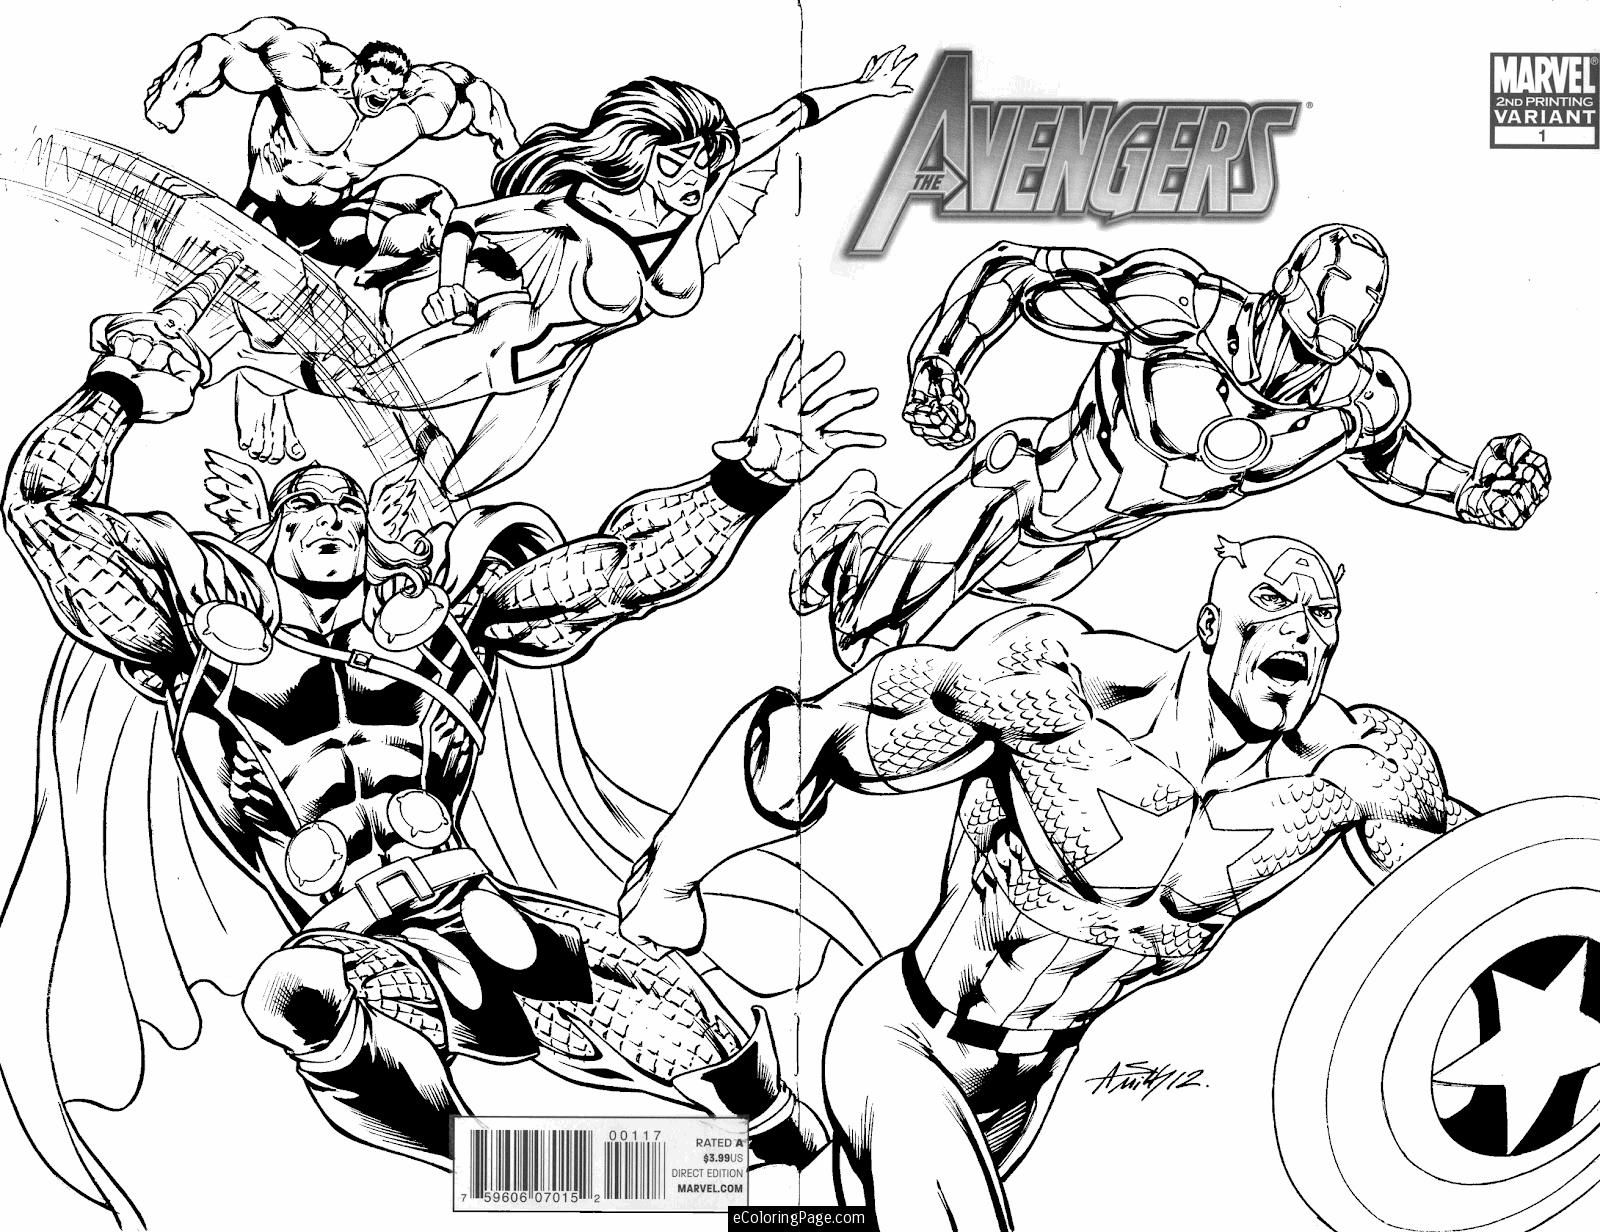 marvel superhero coloring pages All Superhero Coloring Pages | DownloadMarvel Superheroes Avengers  marvel superhero coloring pages